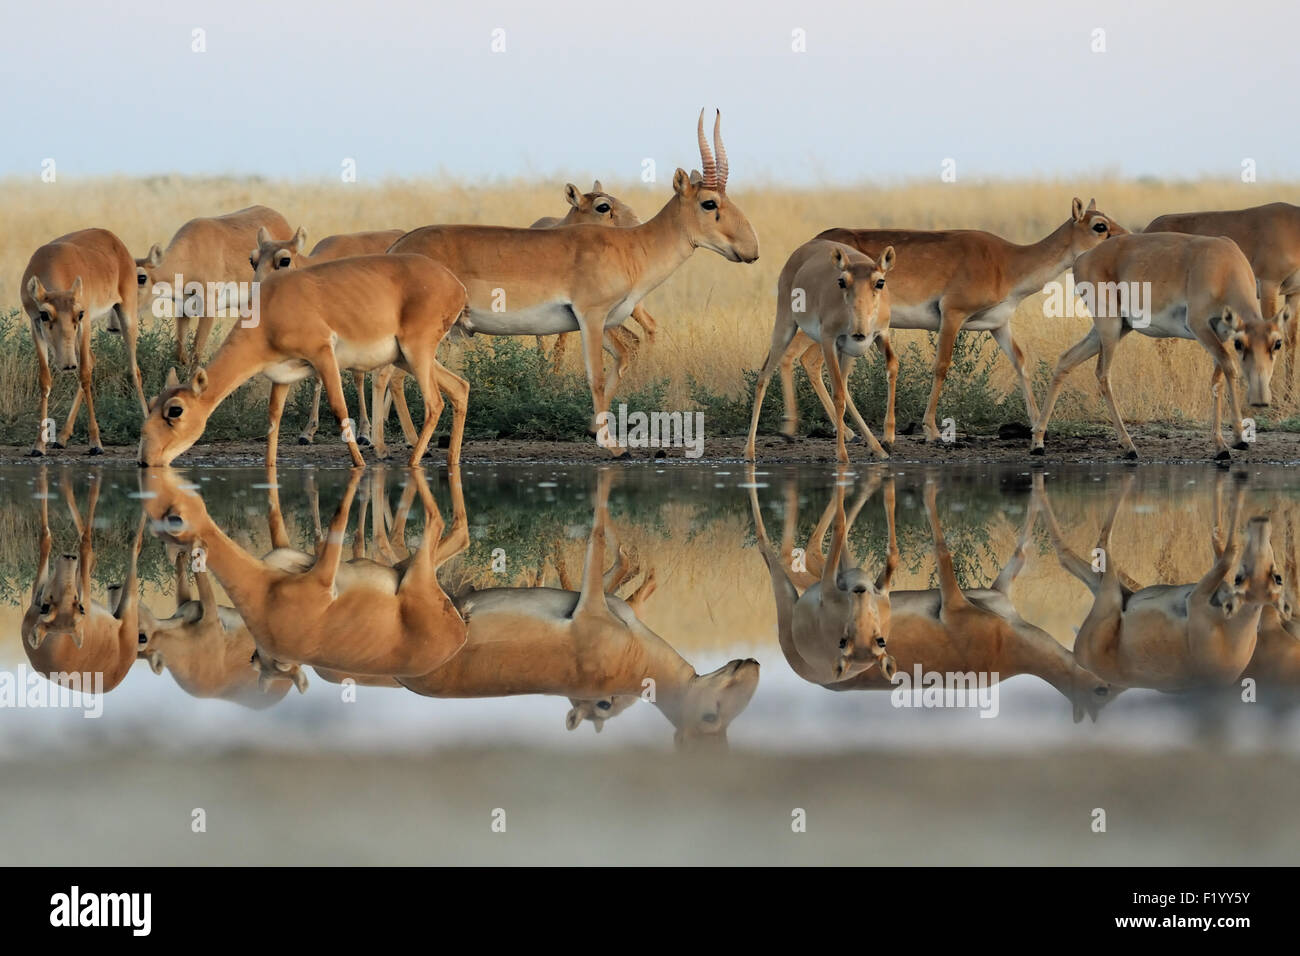 Wild Saiga antelopes at watering in morning steppe - Stock Image